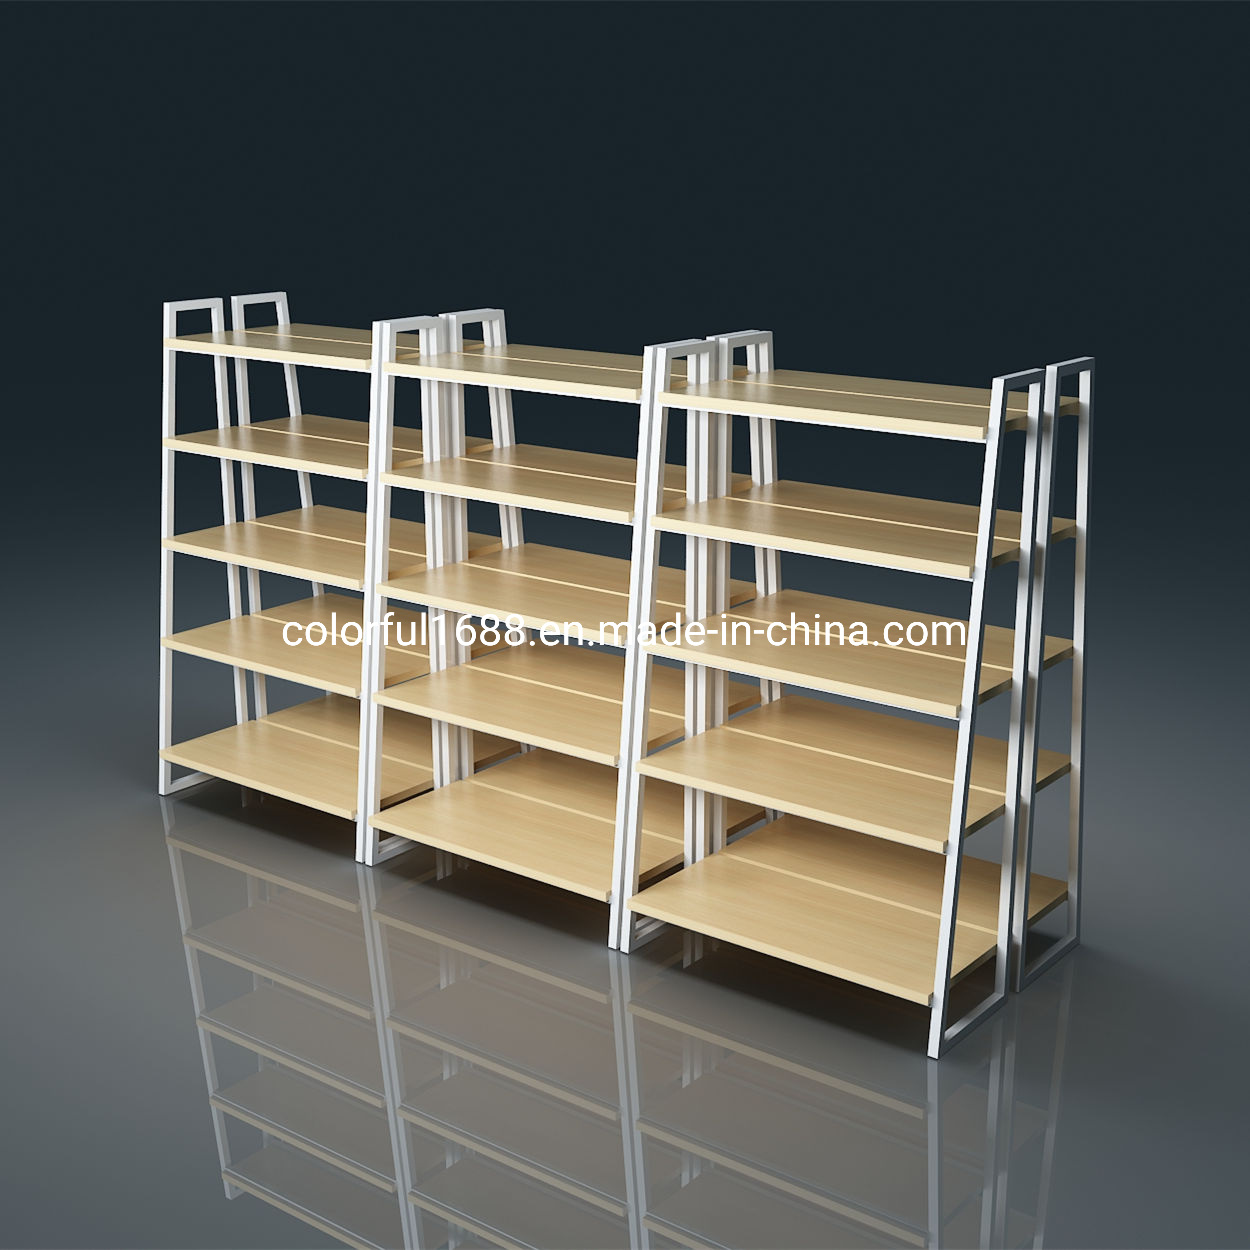 China Custom Diy Supermarket Wooden Convennience Store Rack